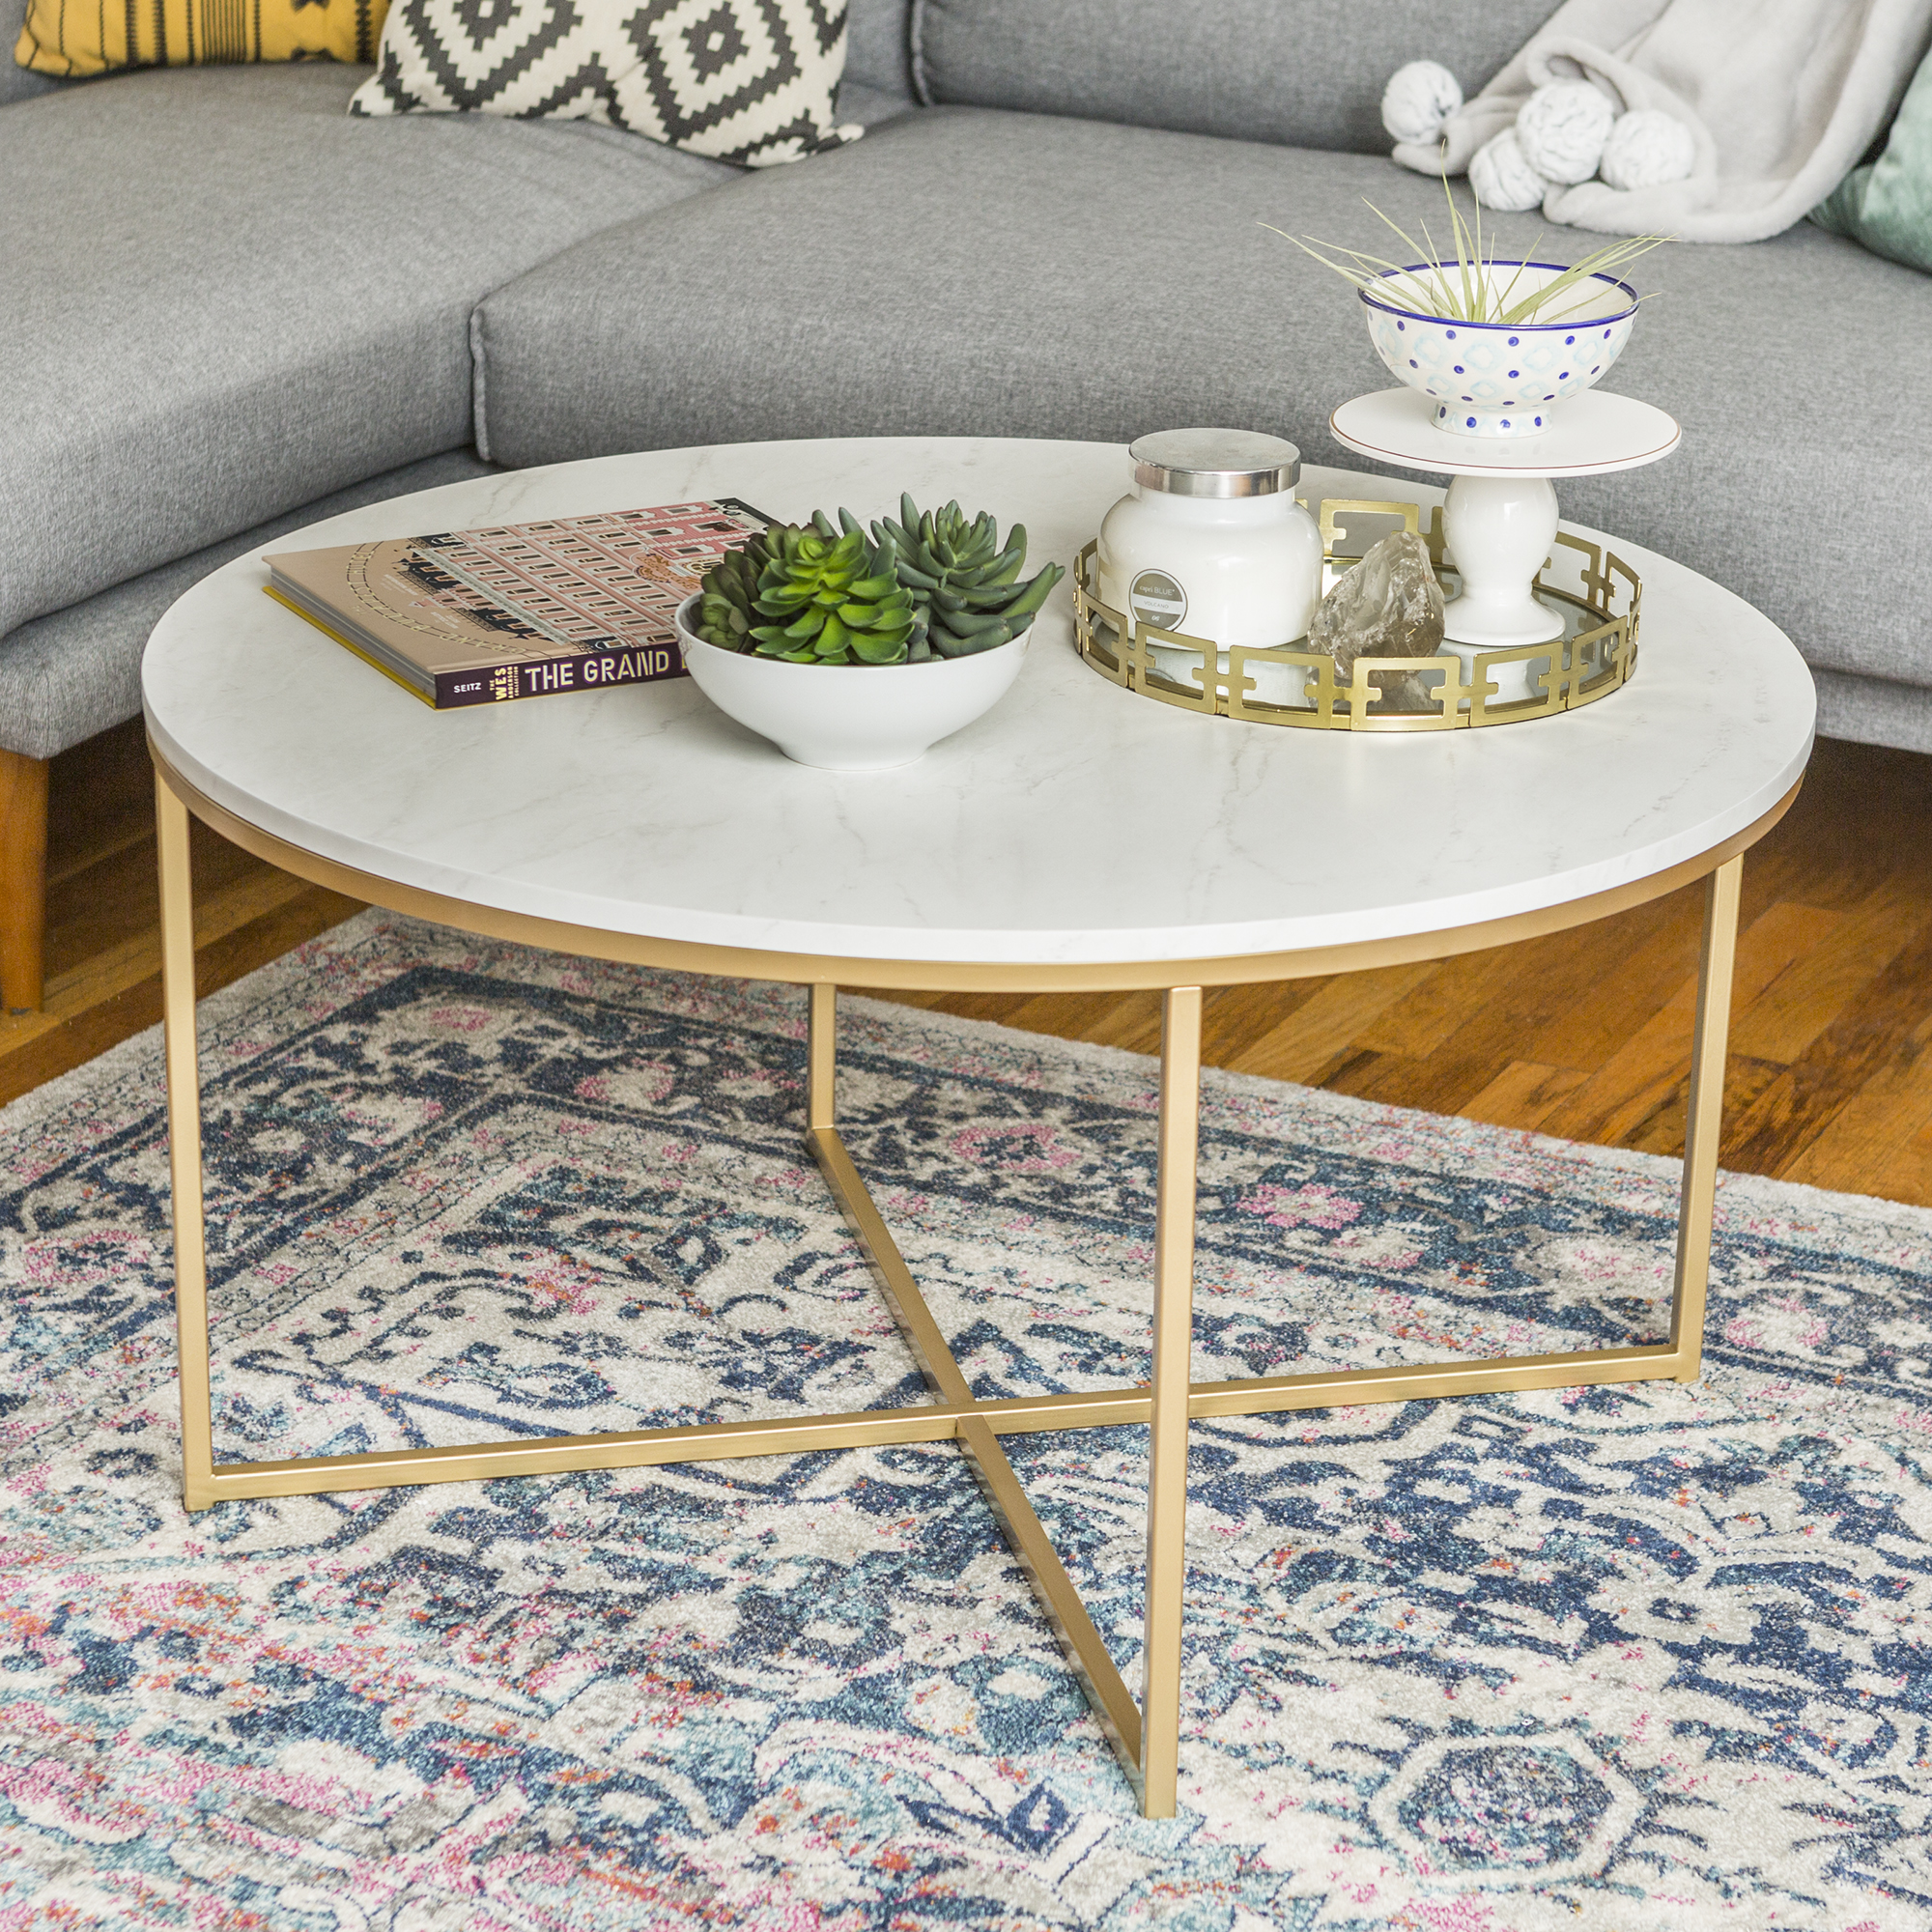 Manor Park Round Mid-Century Modern with X-Base Coffee Table - White Marble/Gold